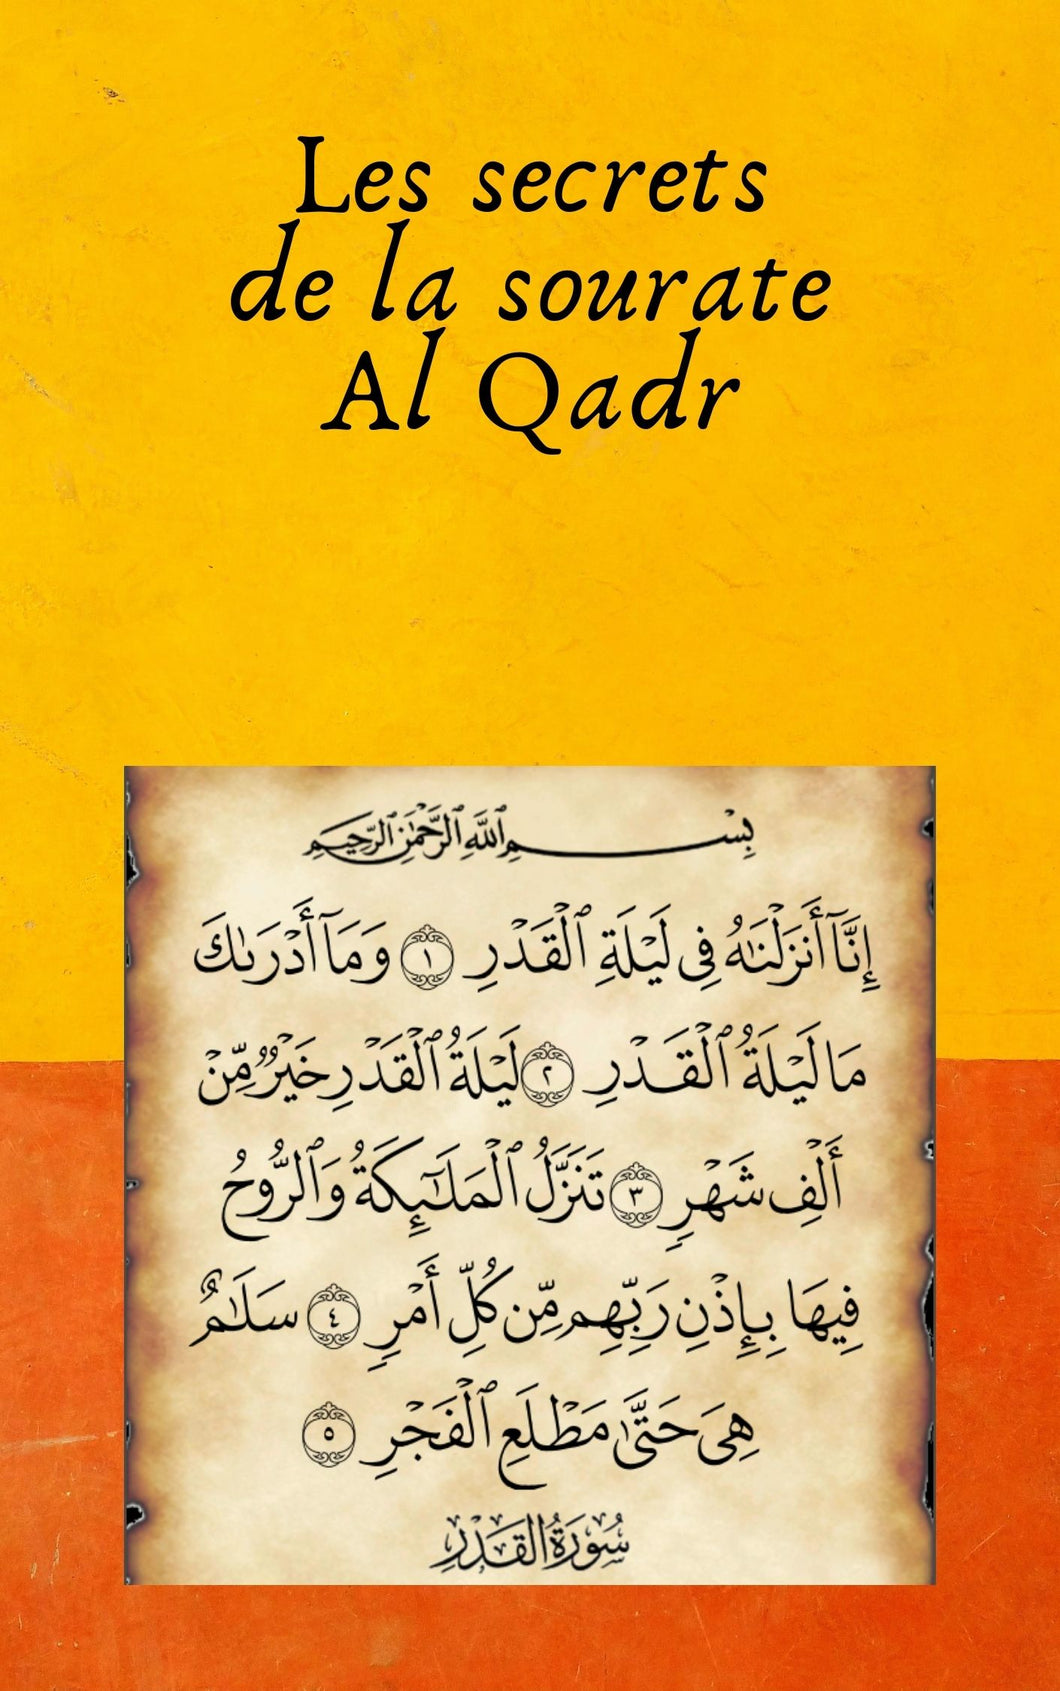 Les secrets de la sourate Al Qadr